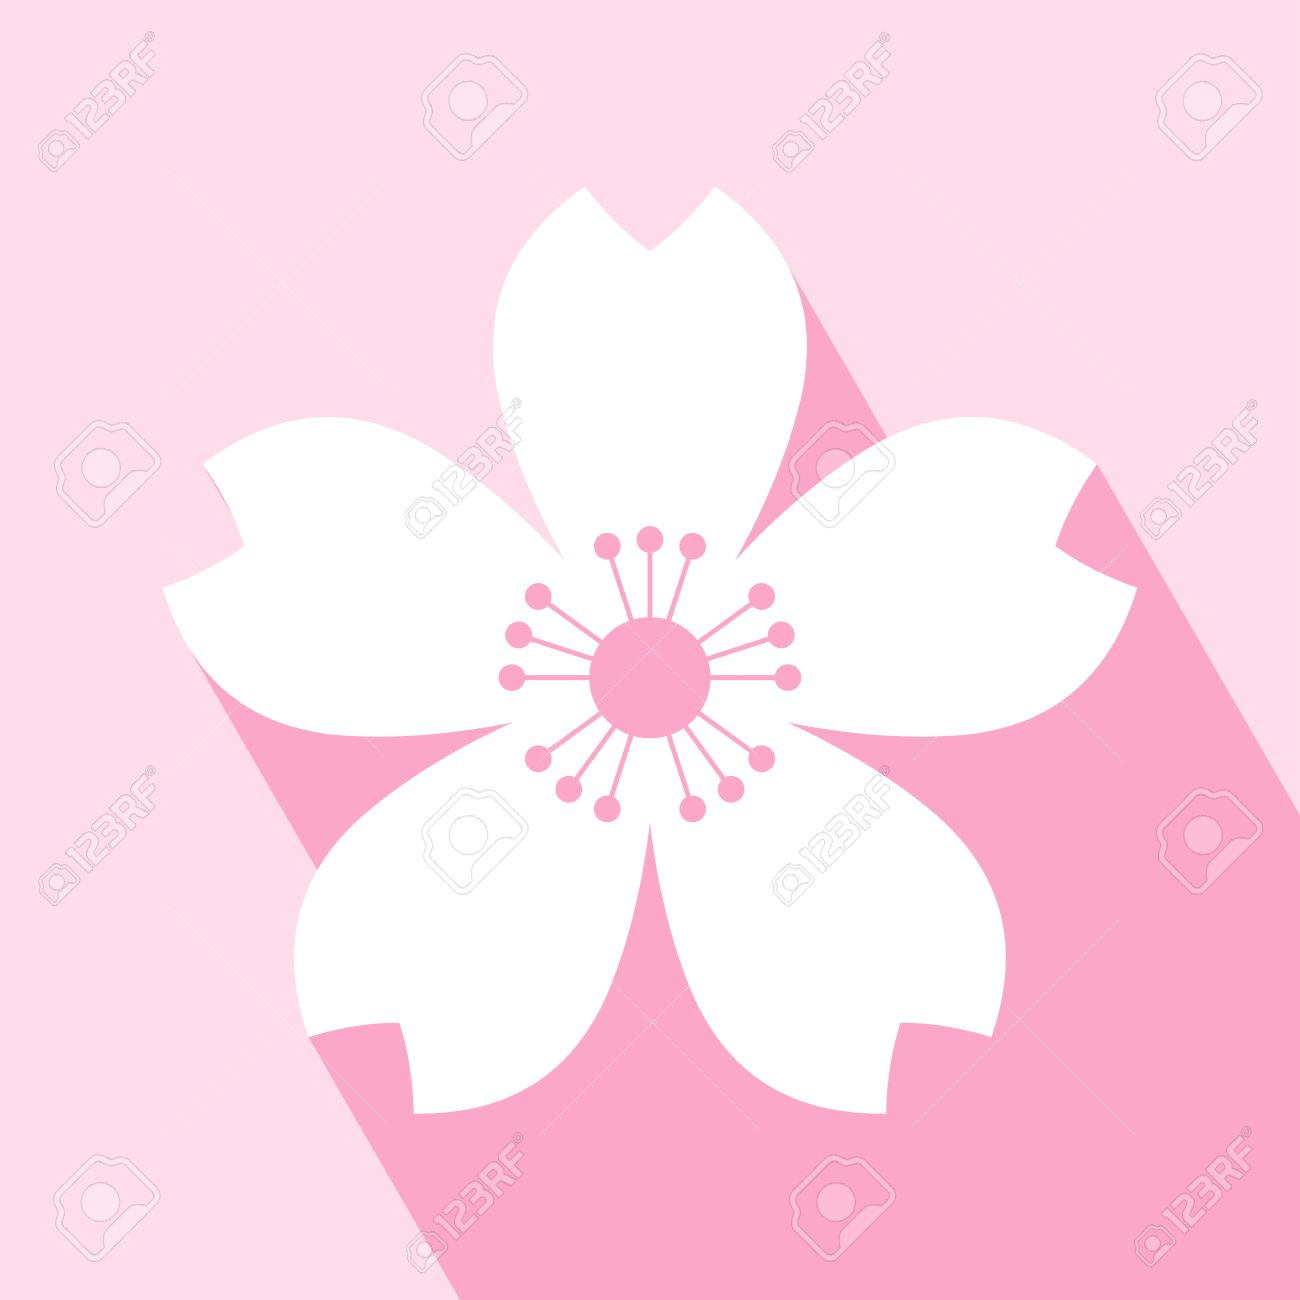 Cherry blossom icon. Sakura icon. All in a single layer. Vector illustration. Elements for design. EPS 10 vector illustration for design. Cherry blossom icon on pink background. Cherry blossom Icon Icon with Long Shadow. - 55607658